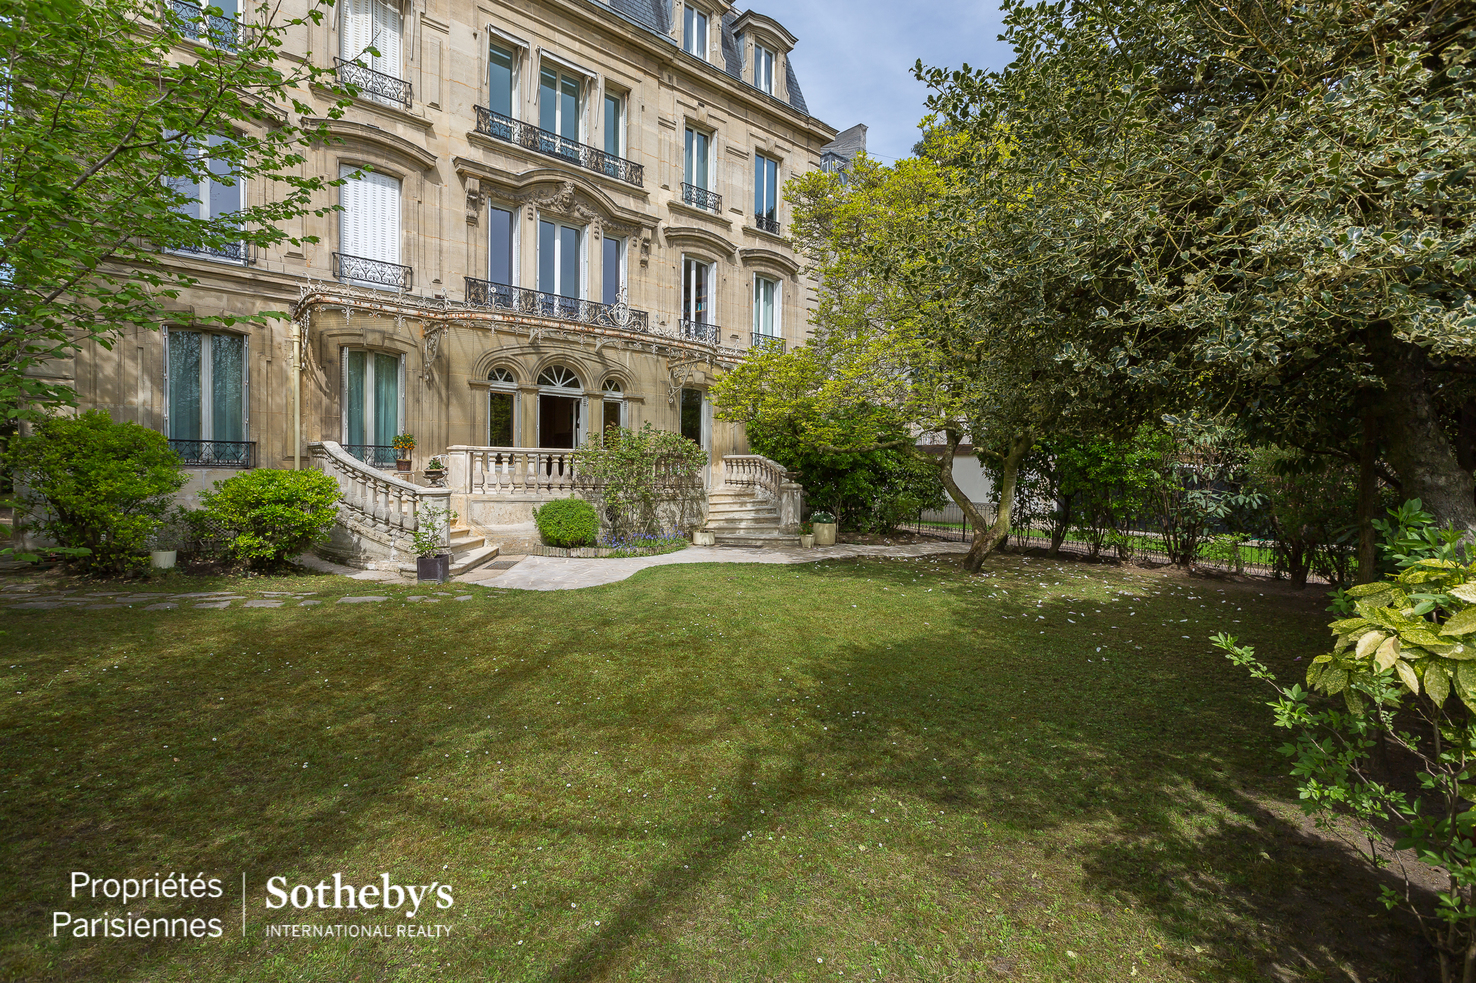 Apartment for Sale at Exceptional mansion with garden avenue Daumesnil Other France, Other Areas In France 94160 France